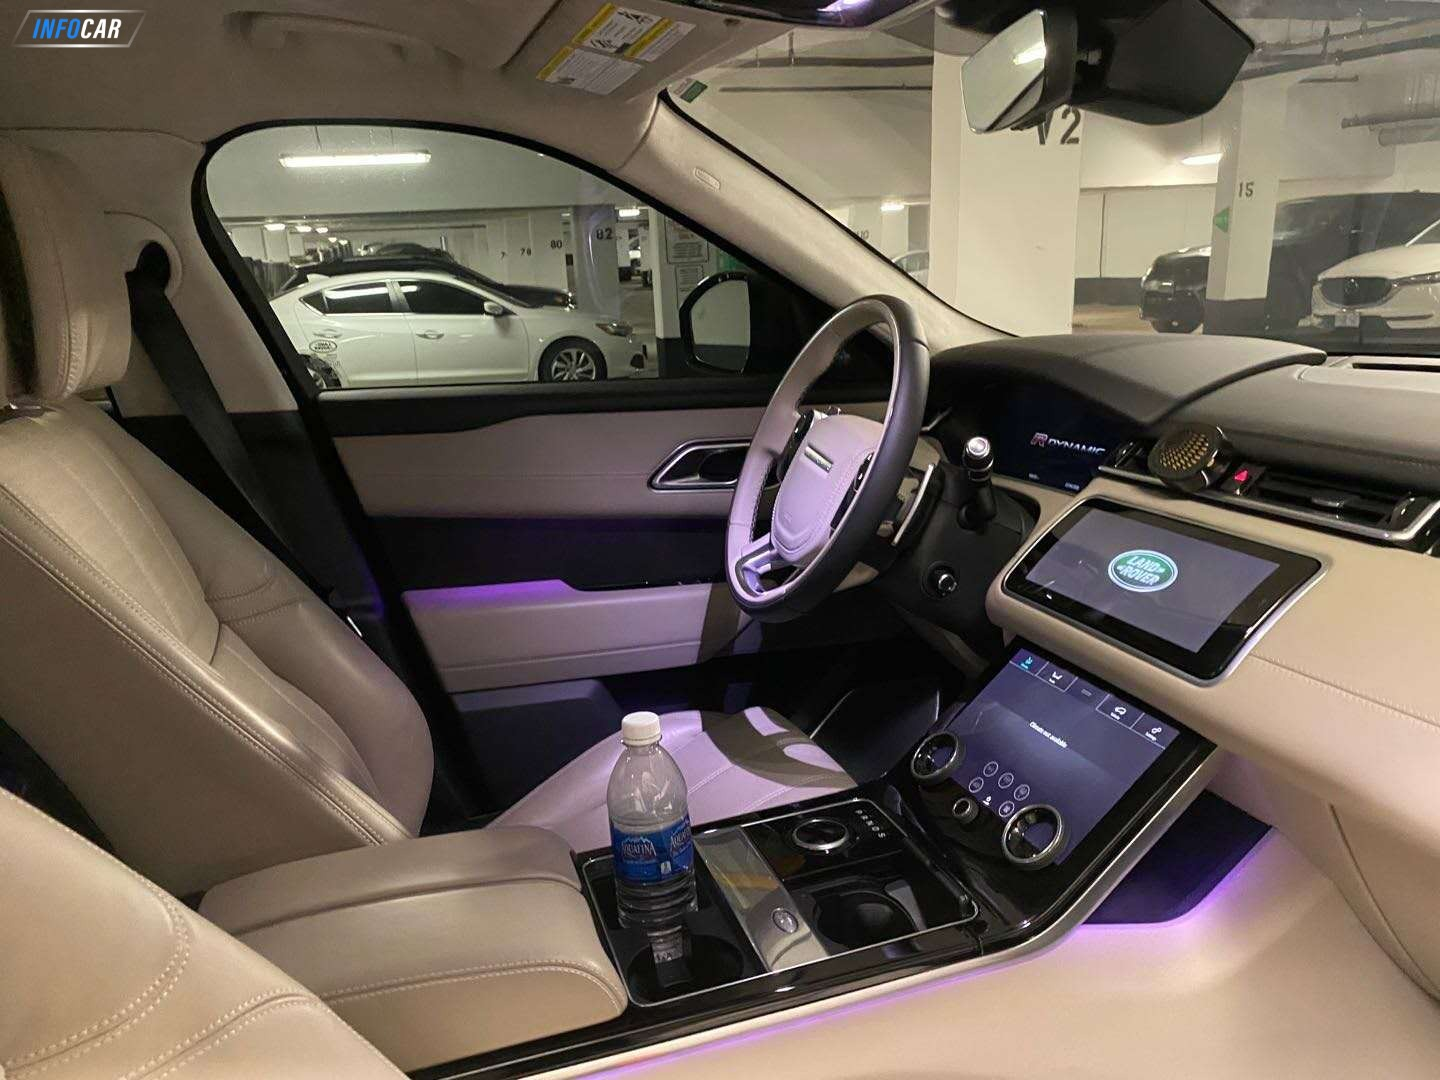 2019 Land Rover Range Rover Velar HSE R-Dynamic P380 - INFOCAR - Toronto's Most Comprehensive New and Used Auto Trading Platform